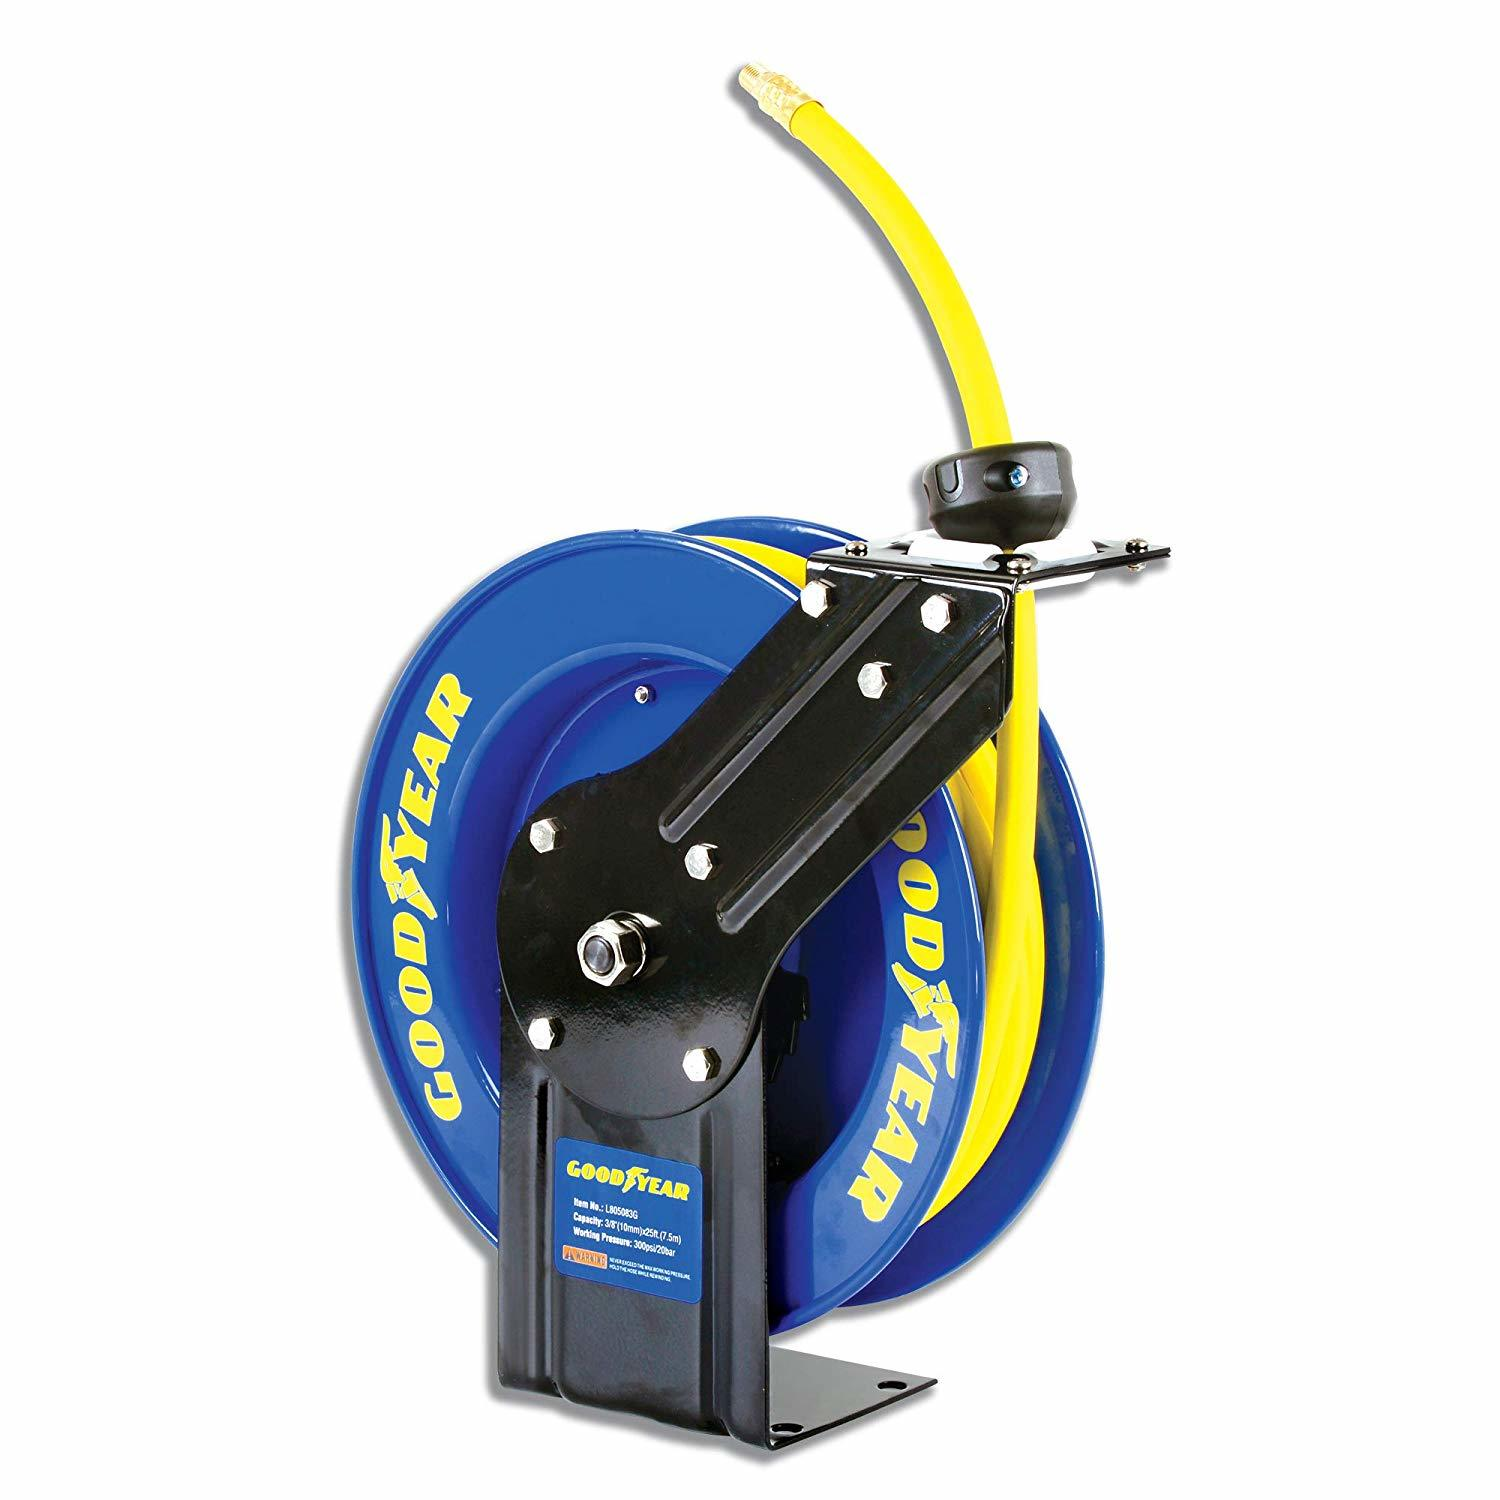 goodyear steel retractable garden hose reel - Best Garden Hose Reel